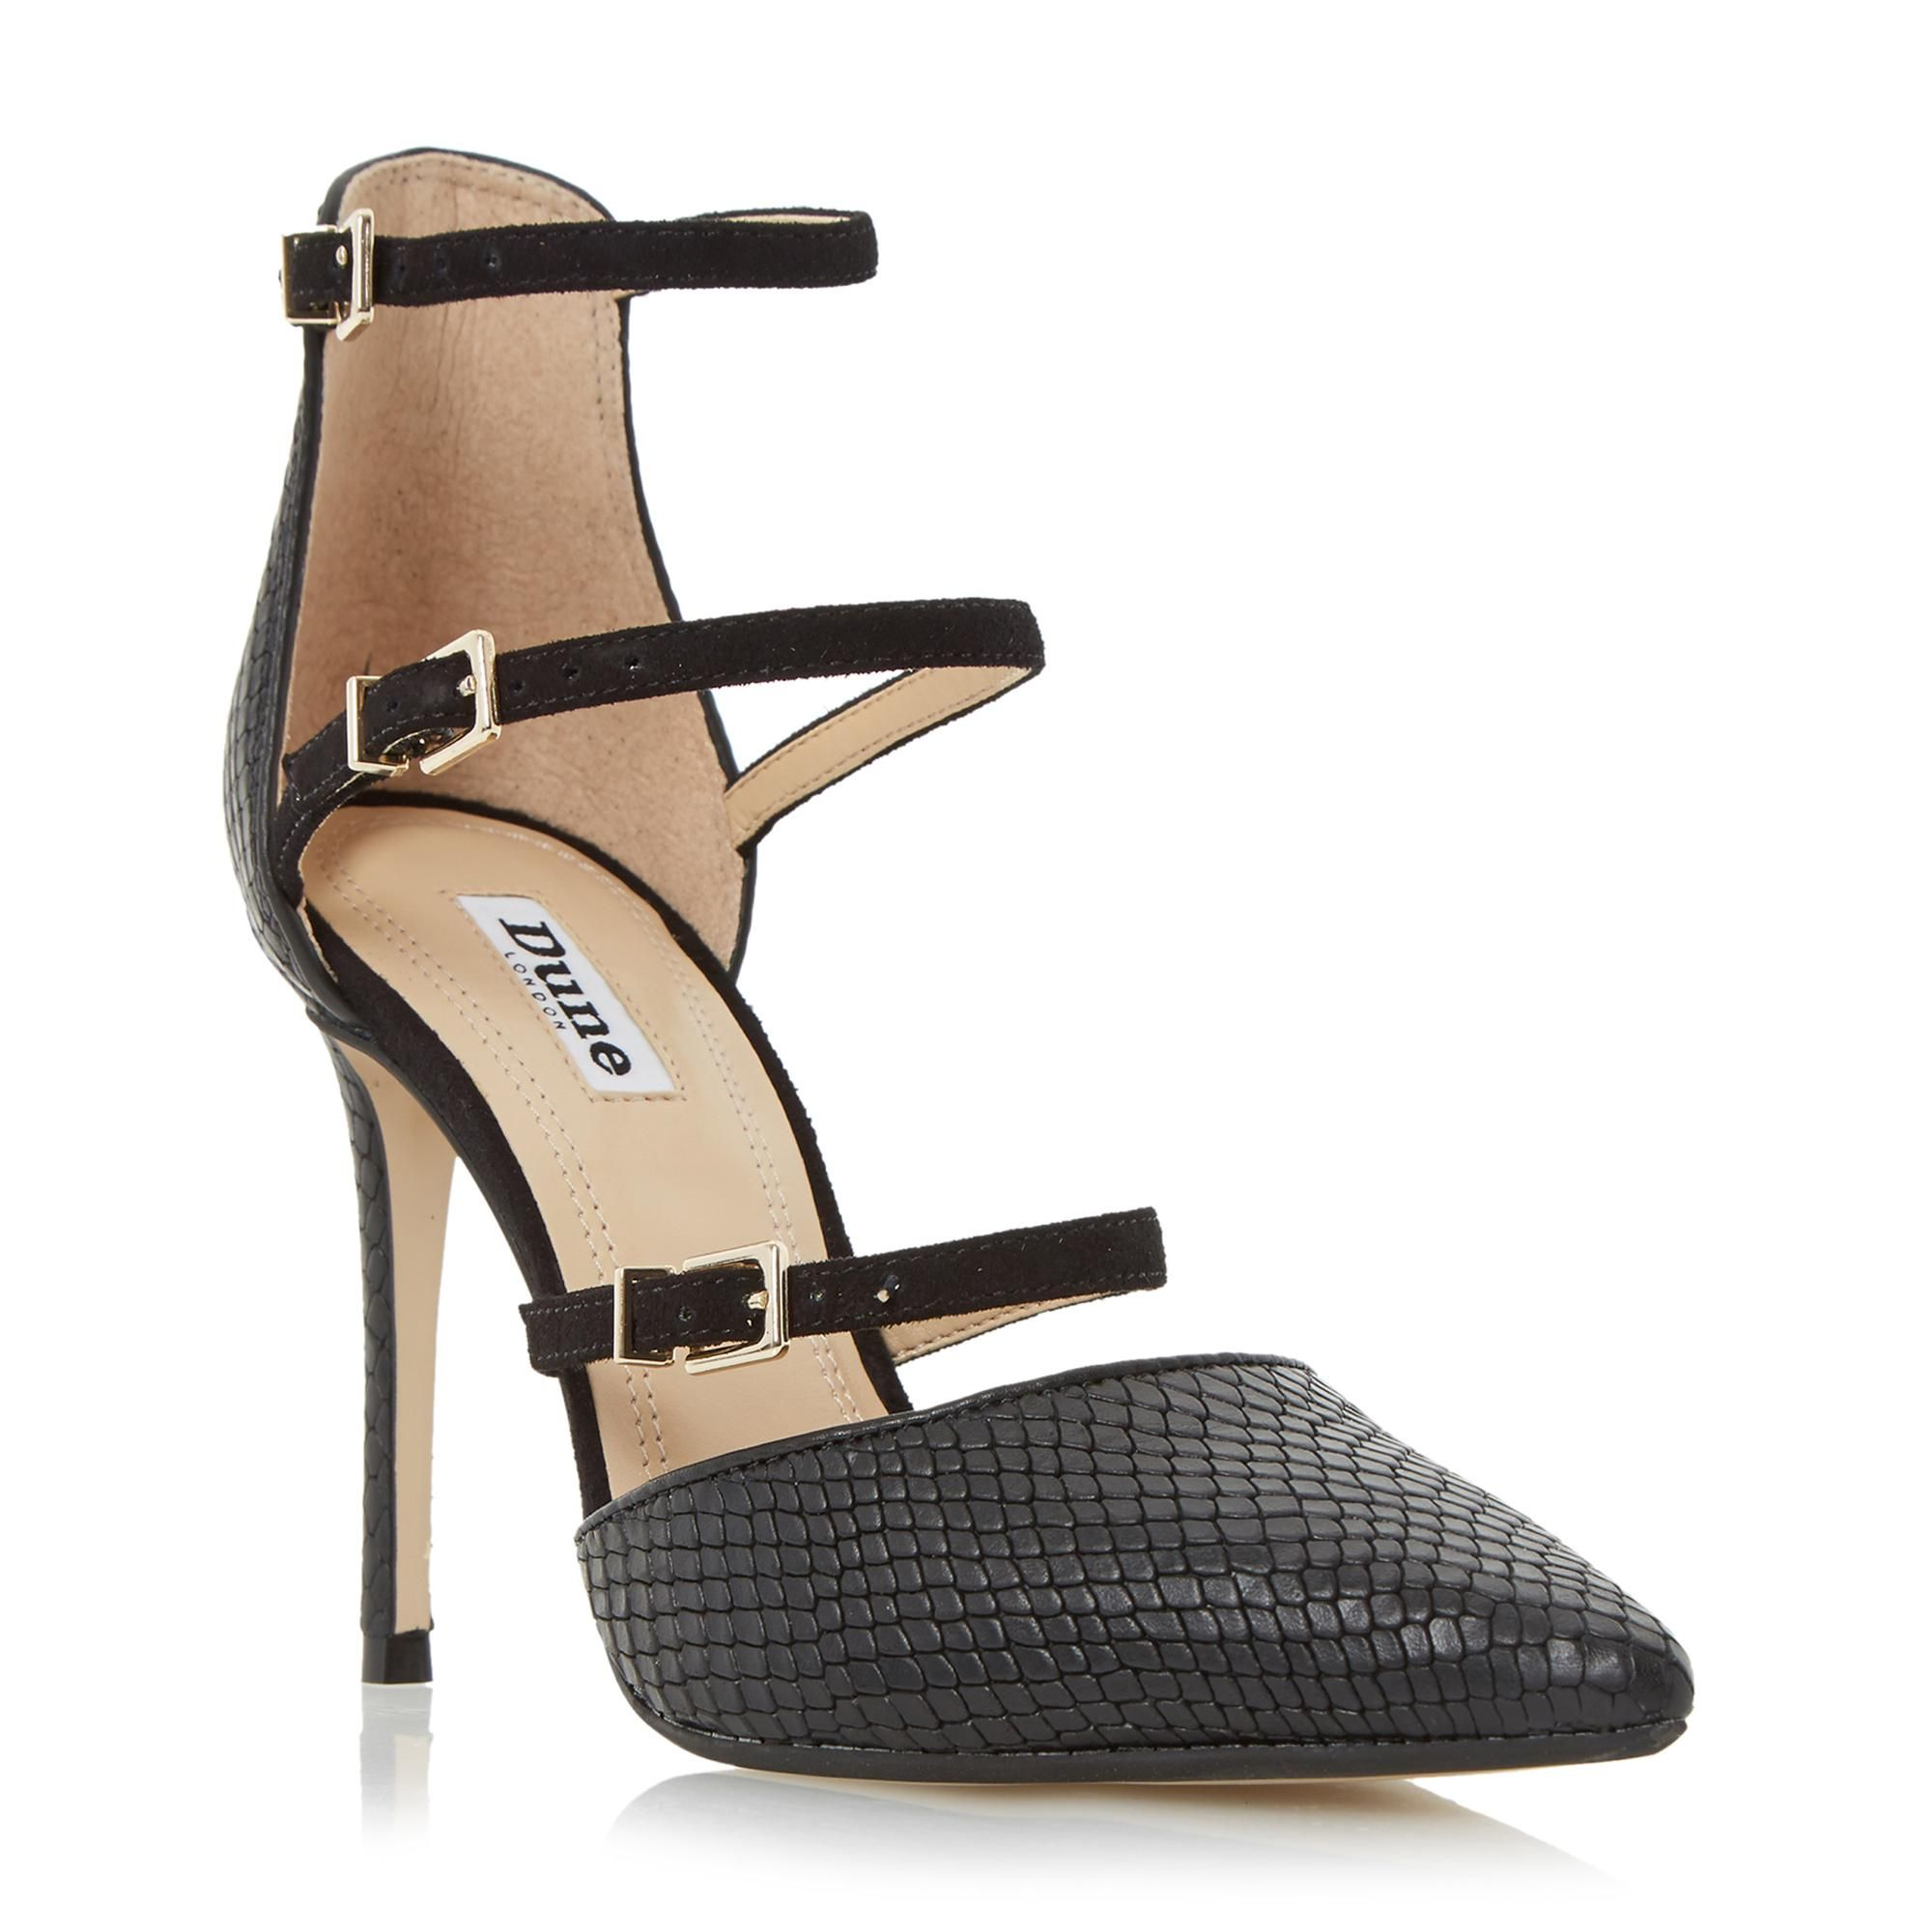 DUNE LADIES CATARINA - Triple Strap Two Part Heeled Court Shoe - black | Dune Shoes Online